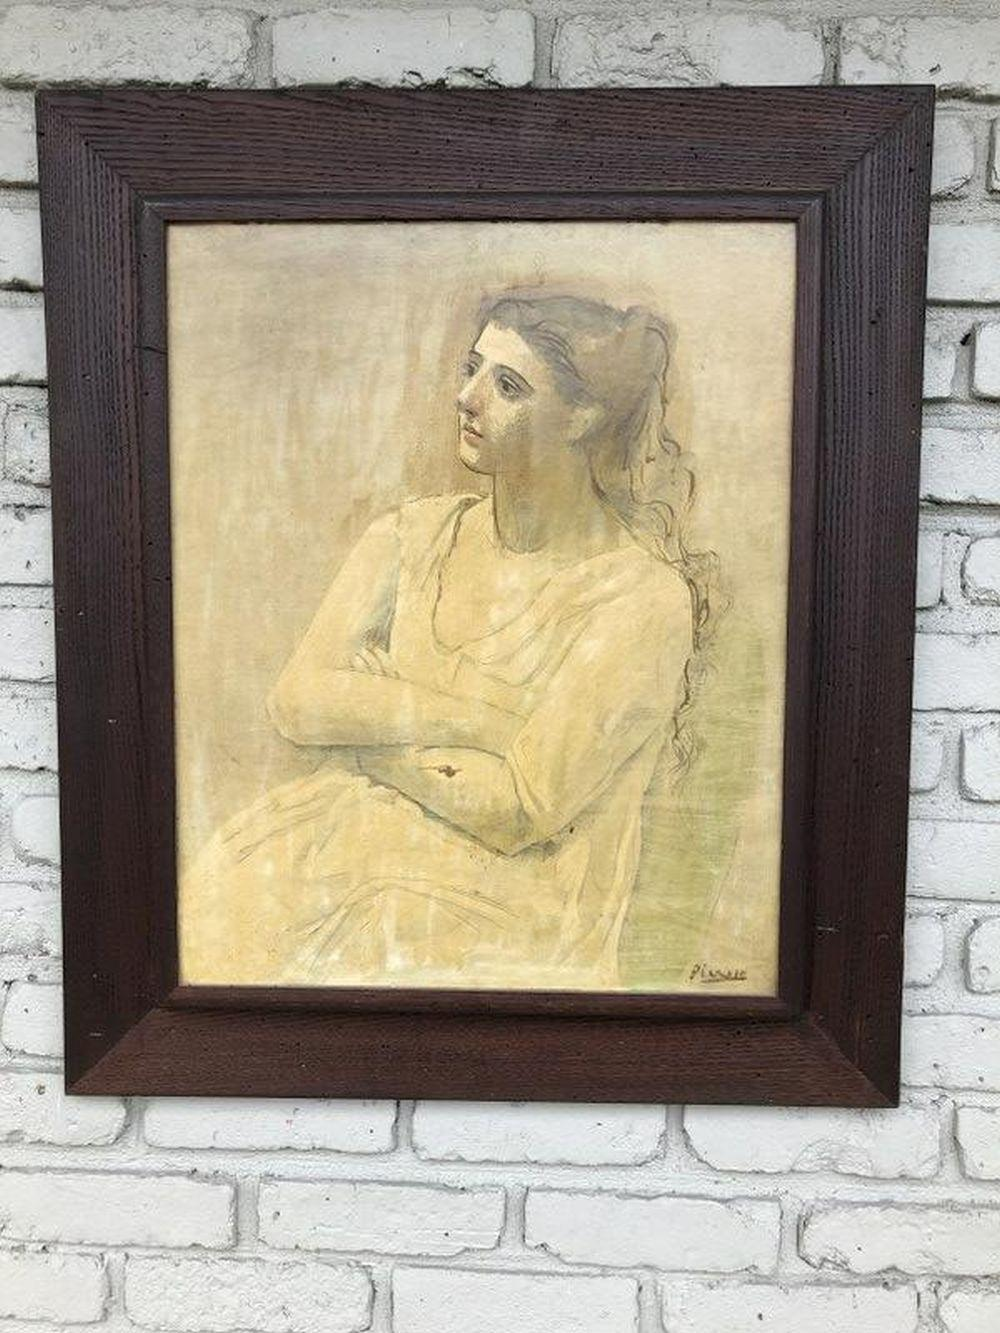 PICASSO PRINT OF WOMAN IN PERIOD MID CENTURY OAK FRAME,